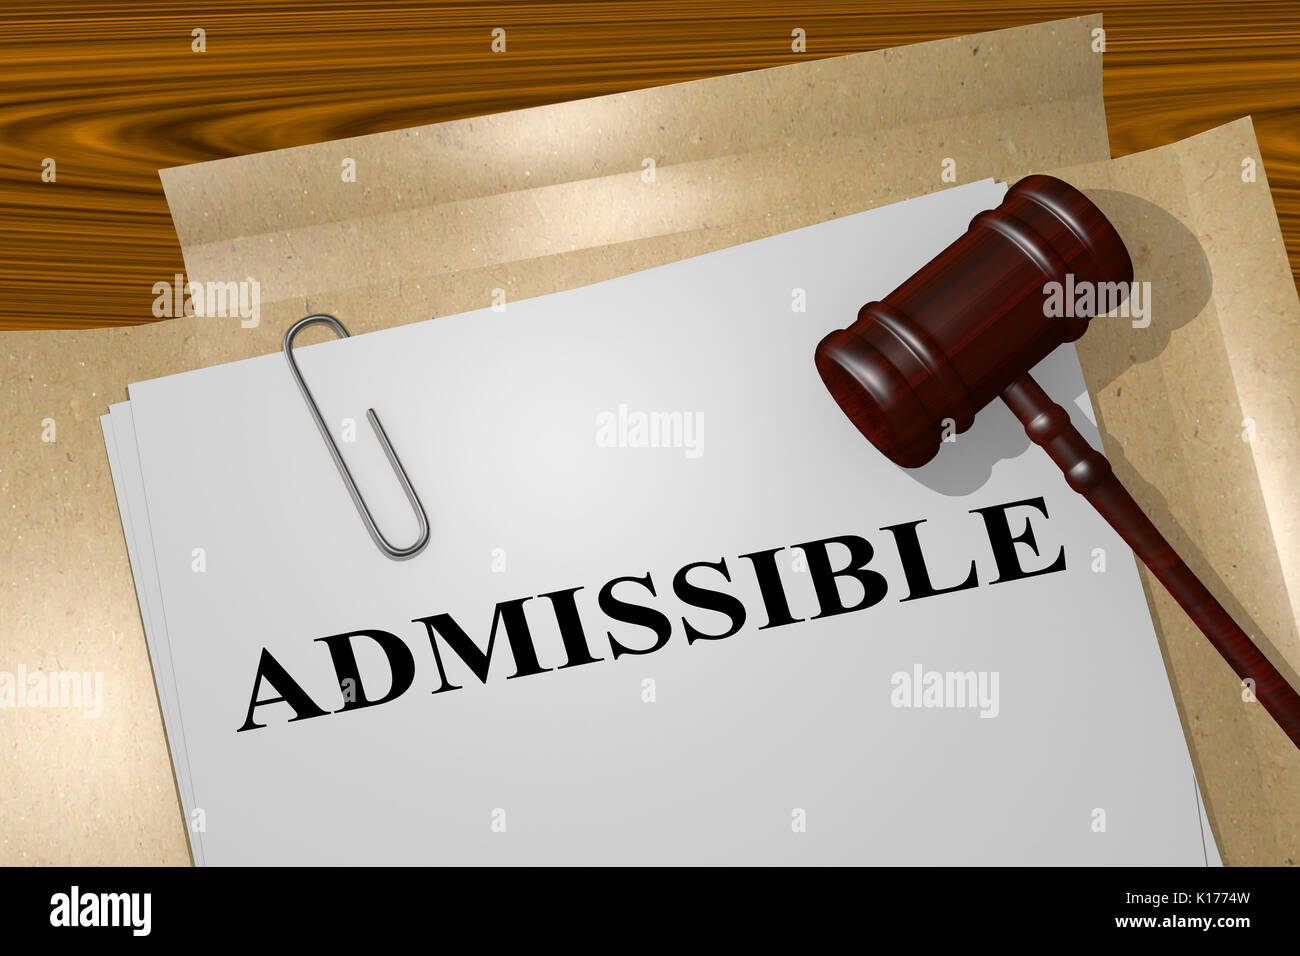 3D illustration of 'ADMISSIBLE' title on Legal Documents. Legal concept. - Stock Image